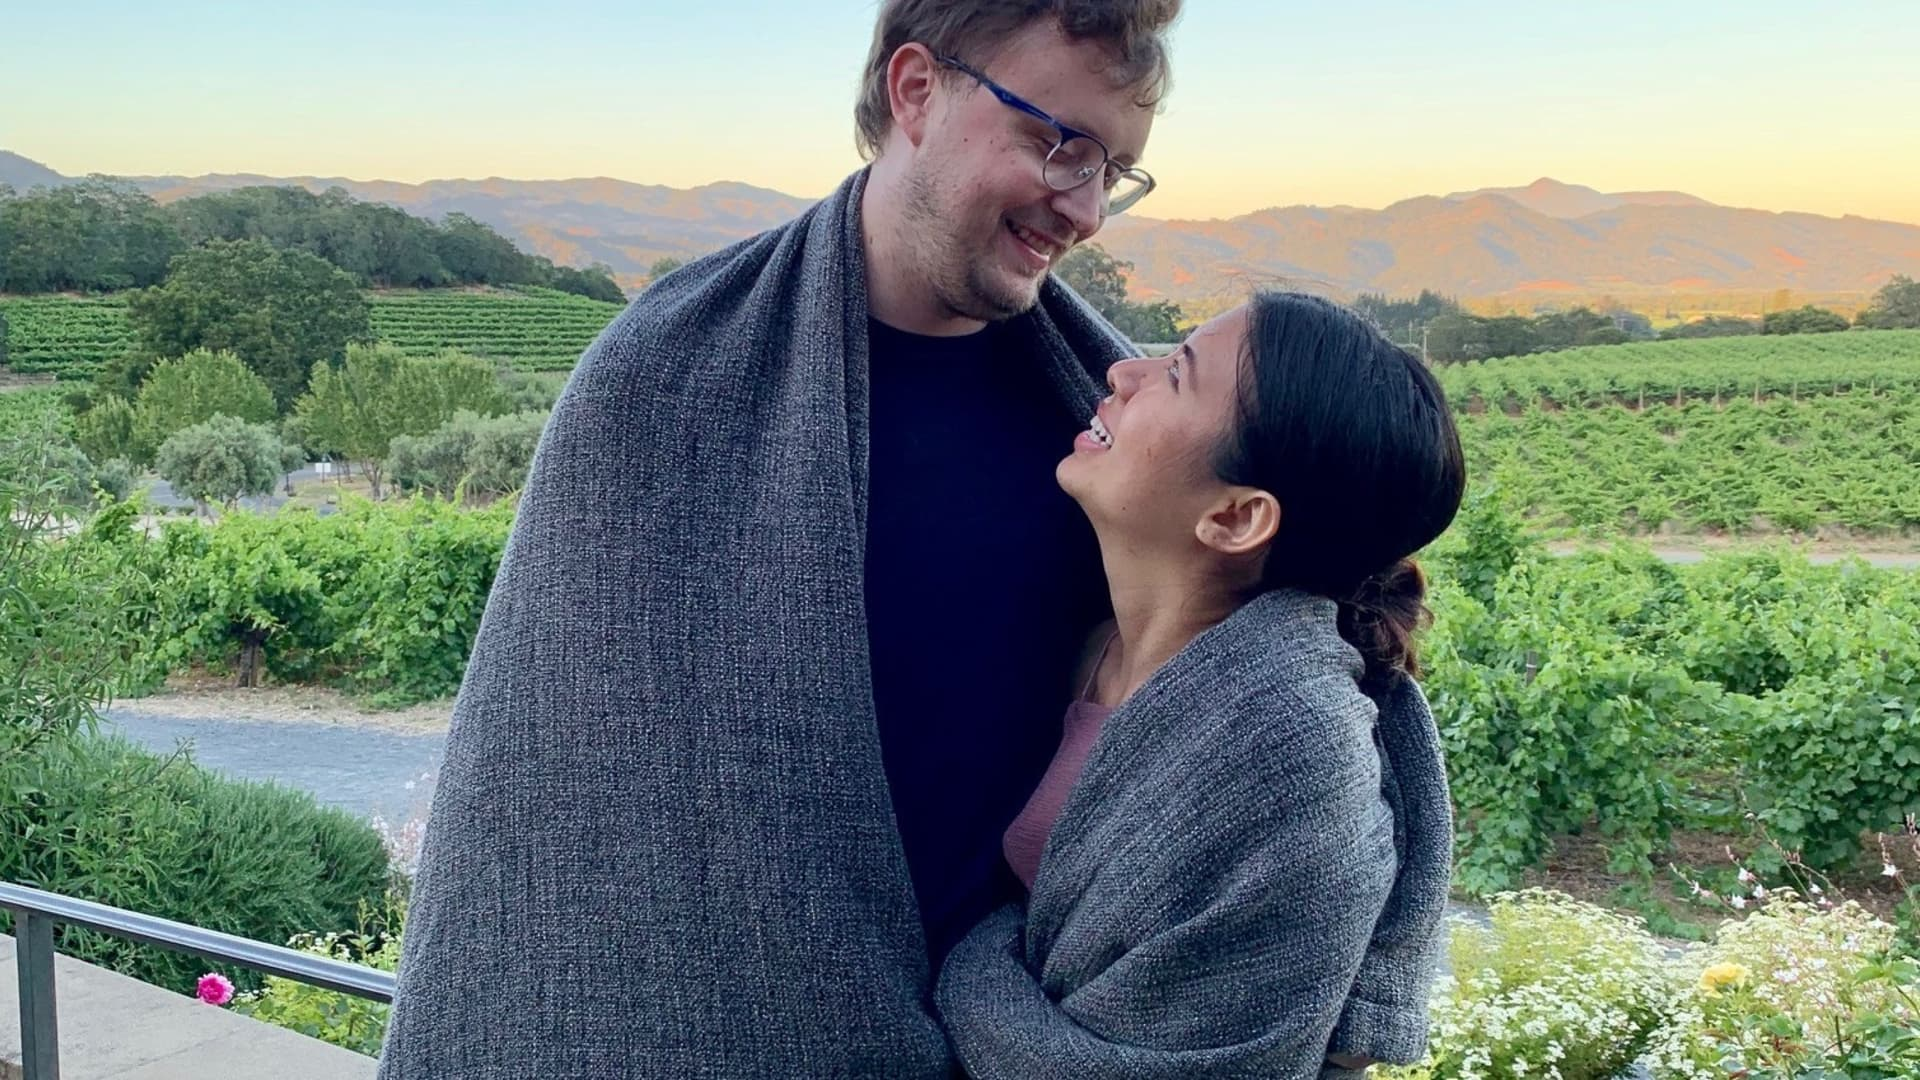 Lani Huang and her boyfriend, Andrew, have been dating for almost two years and moved in together in February.